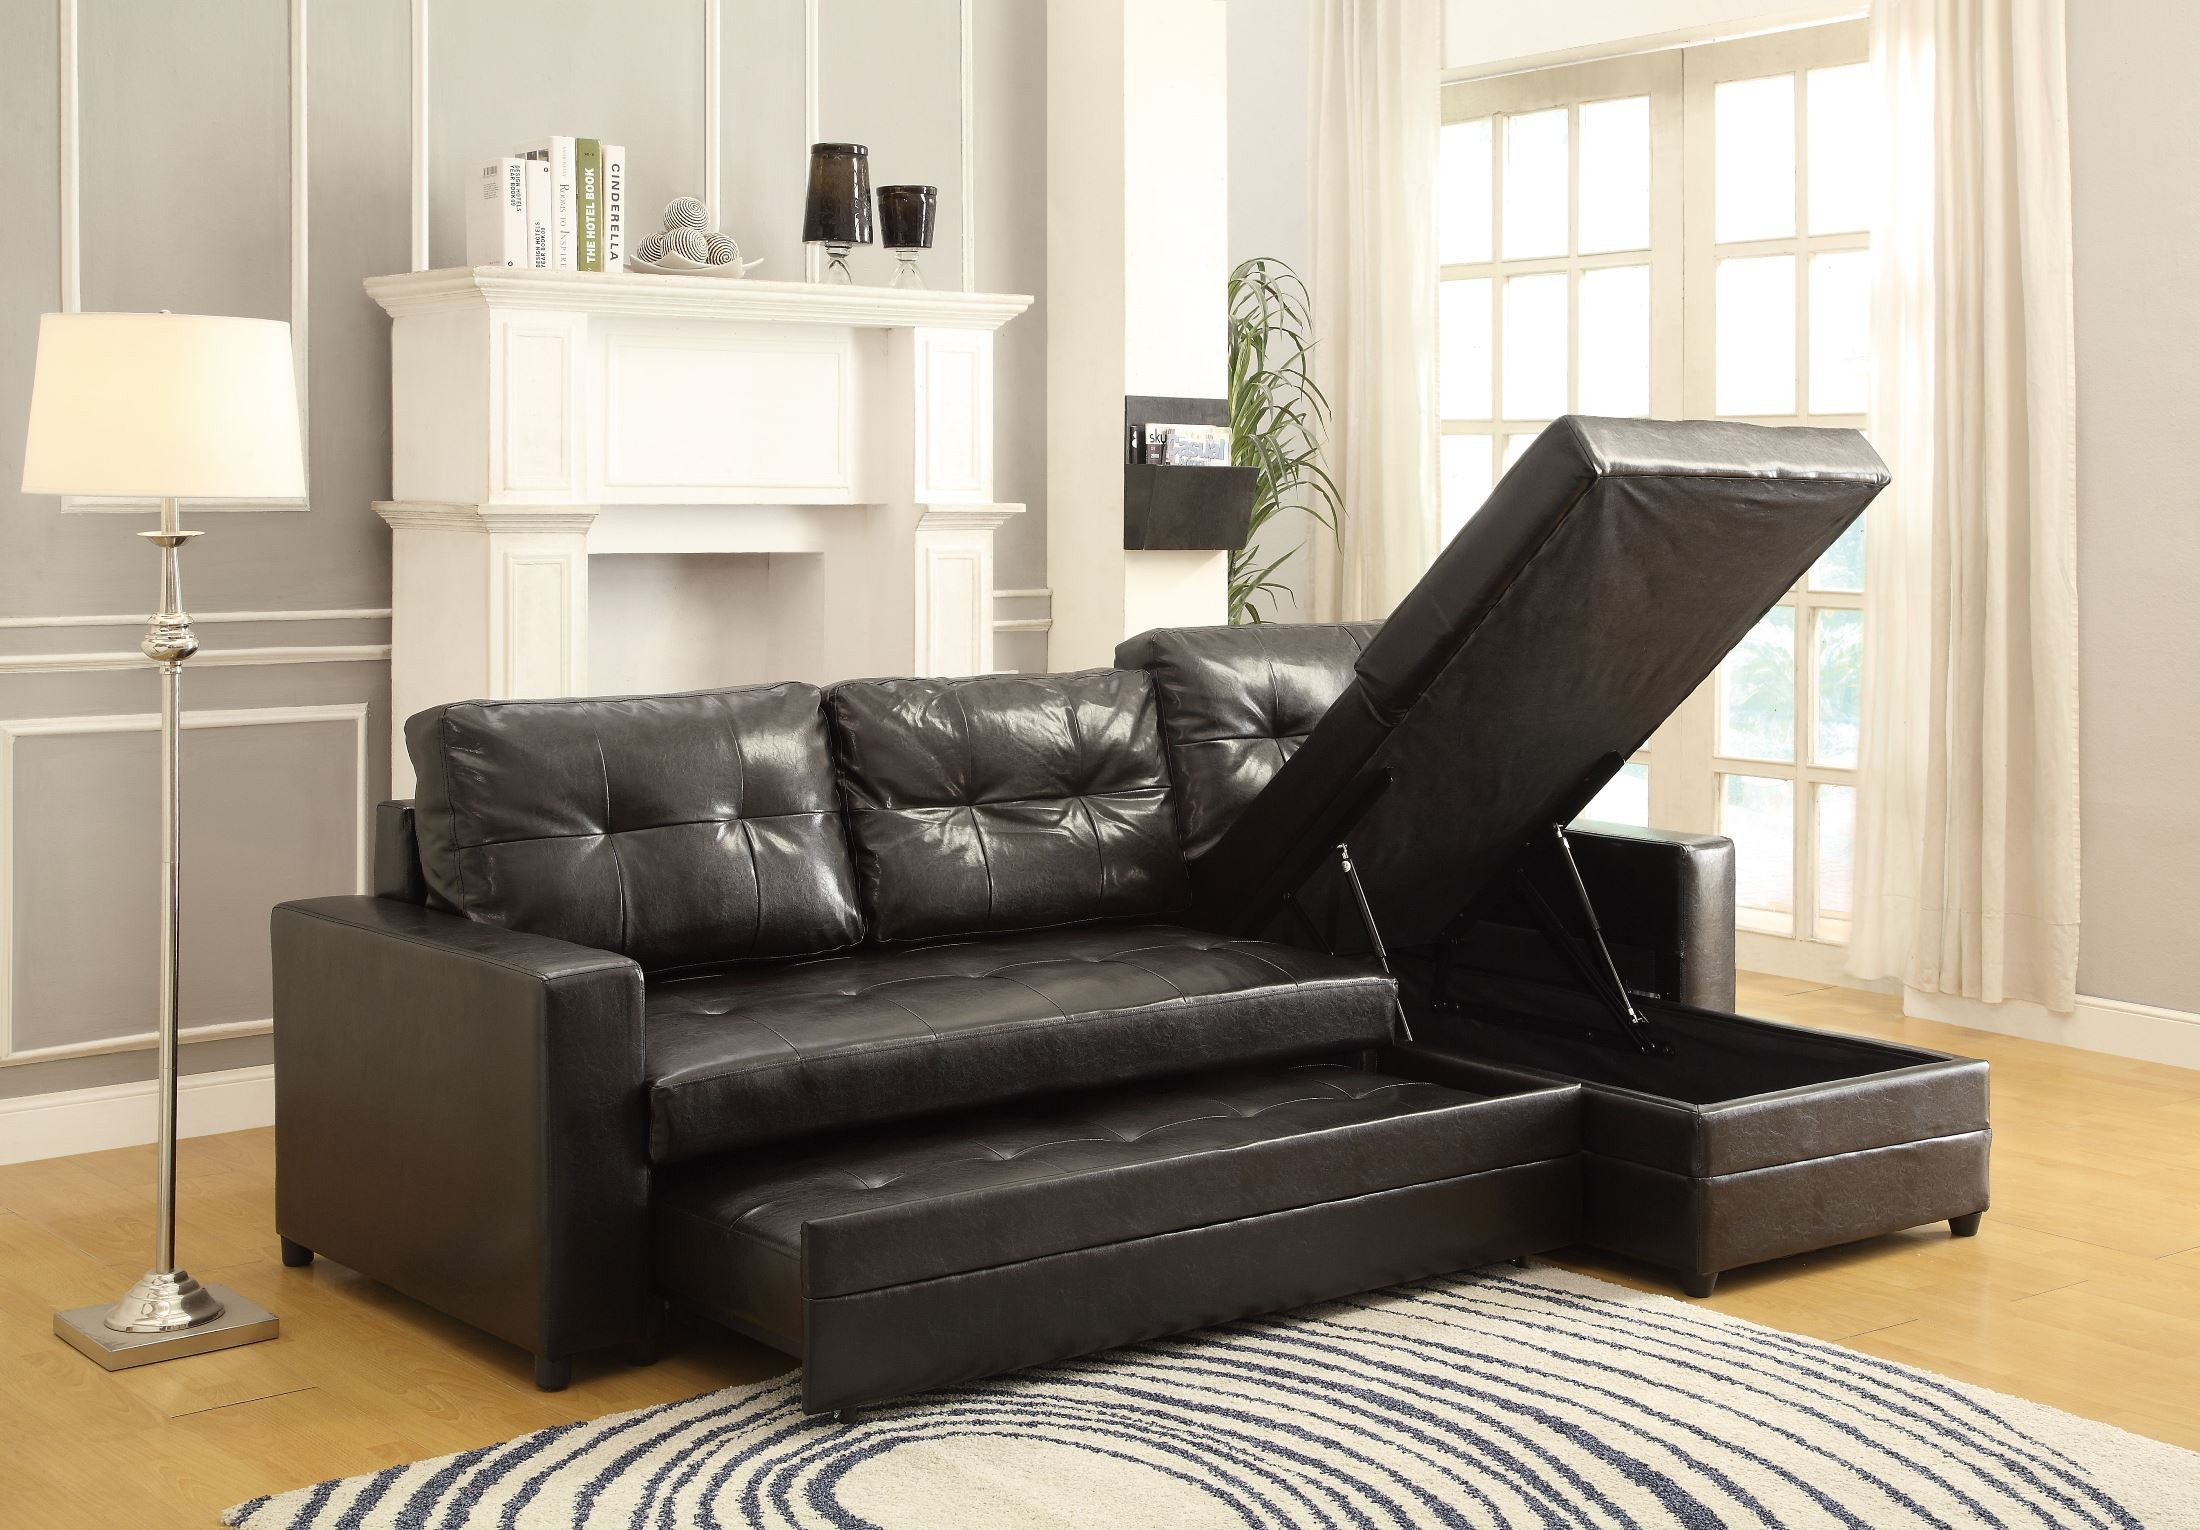 lounger sofa with pull out trundle lazy boy sleeper kemen elegant up from